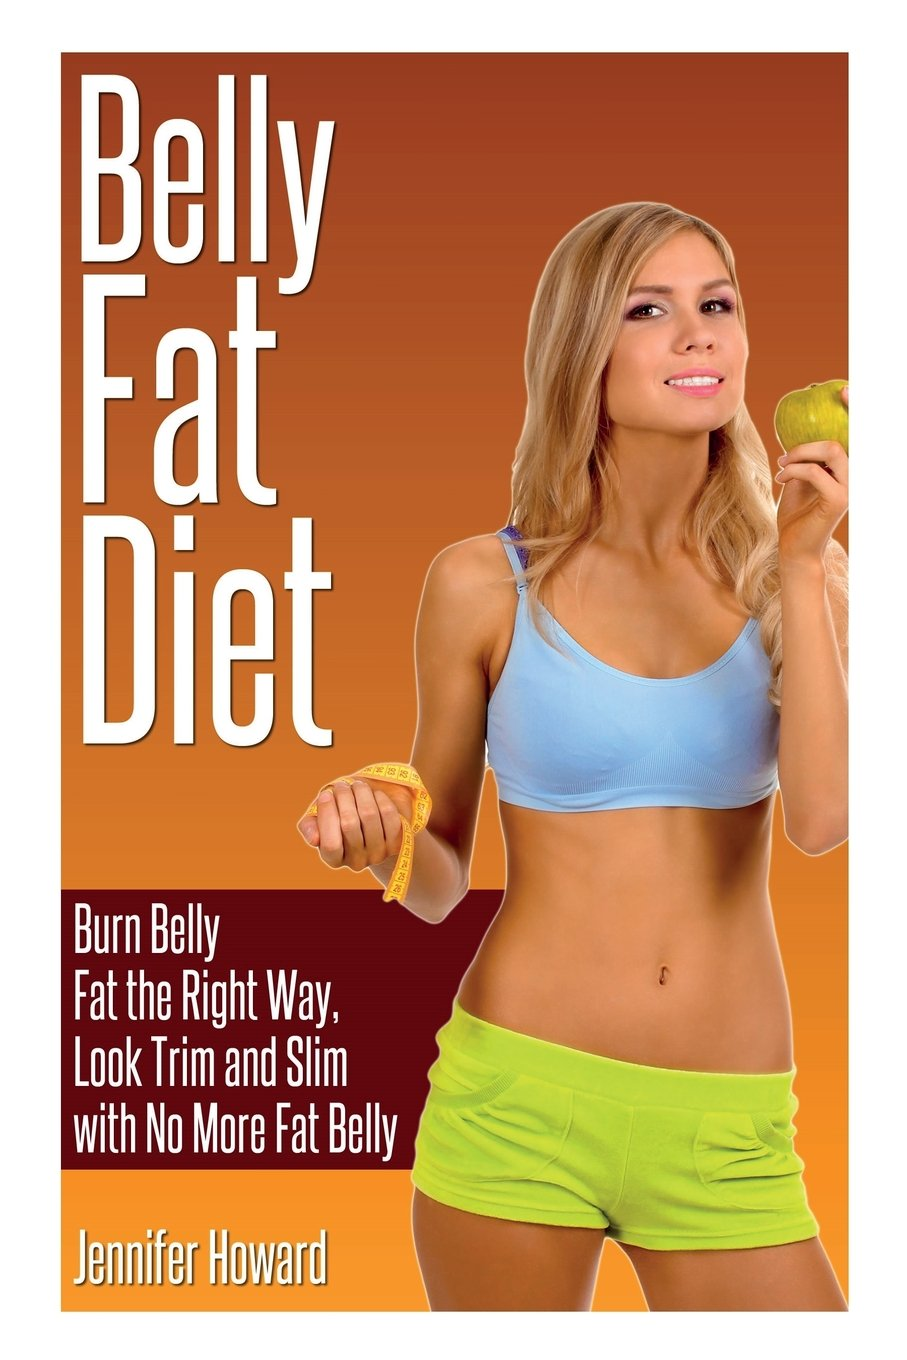 Download Belly Fat Diet: Burn Belly Fat the Right Way, Look Trim and Slim with No More Fat Belly pdf